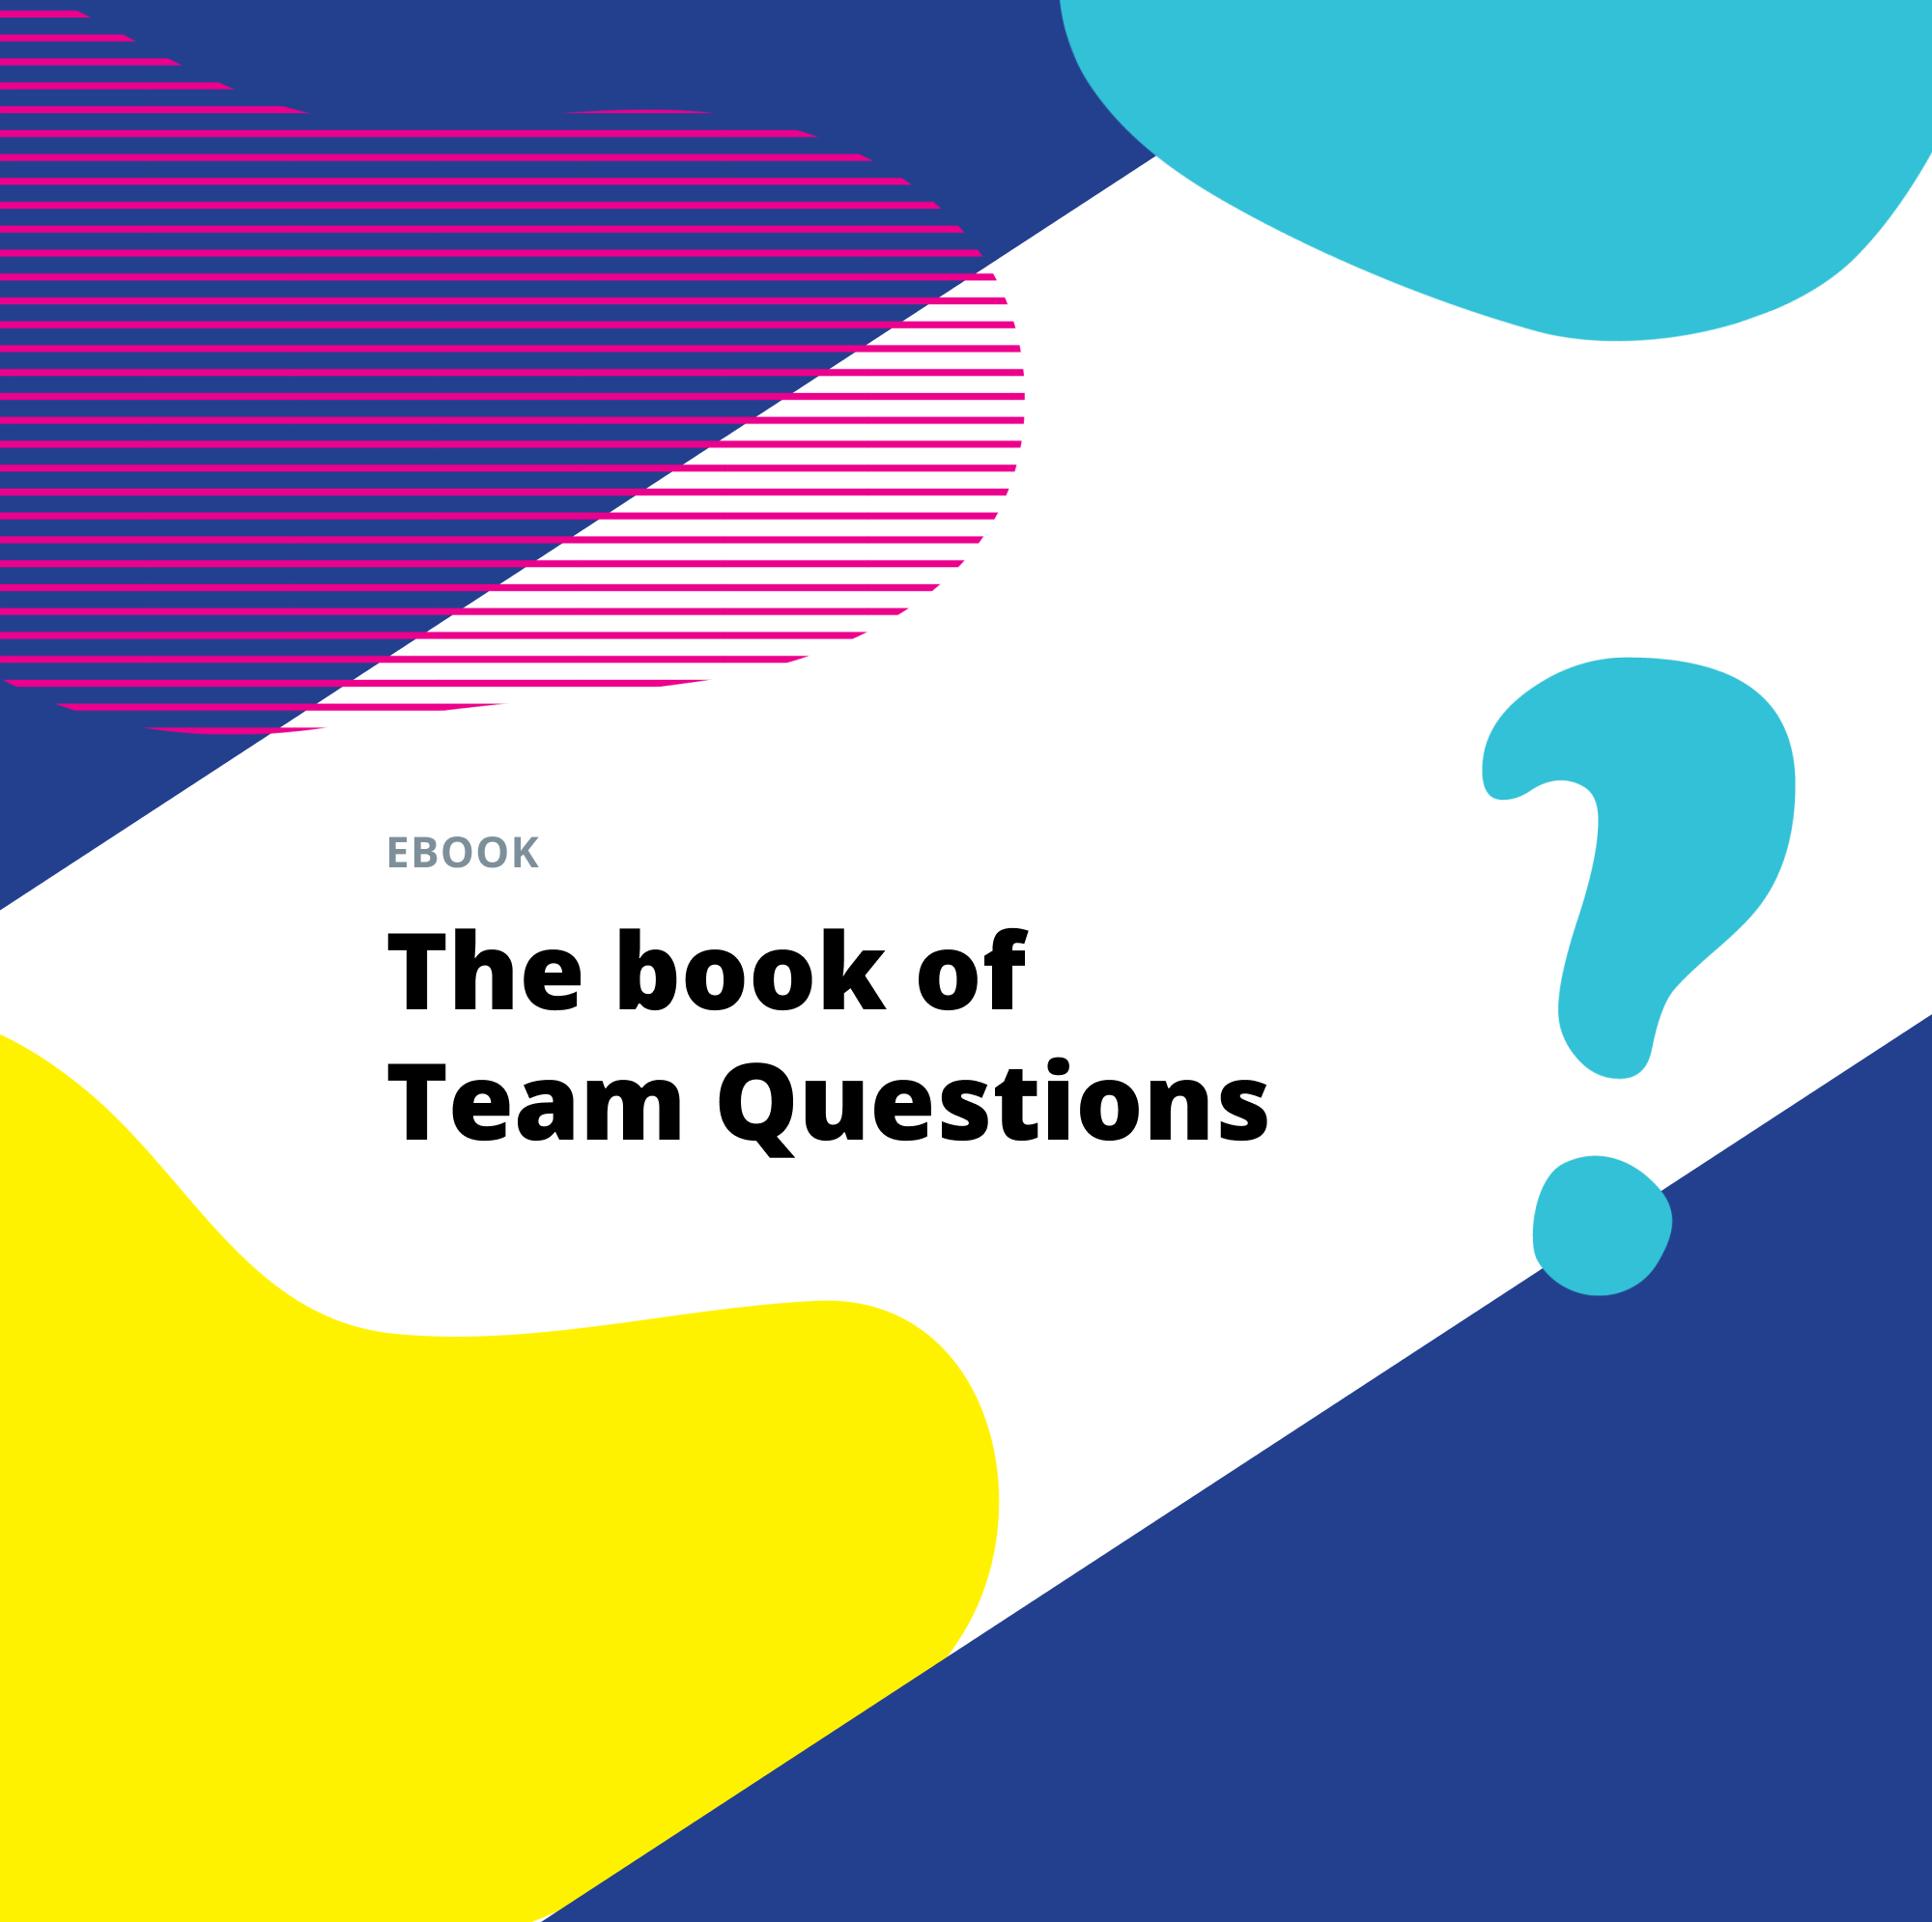 Get the free book of Team Questions